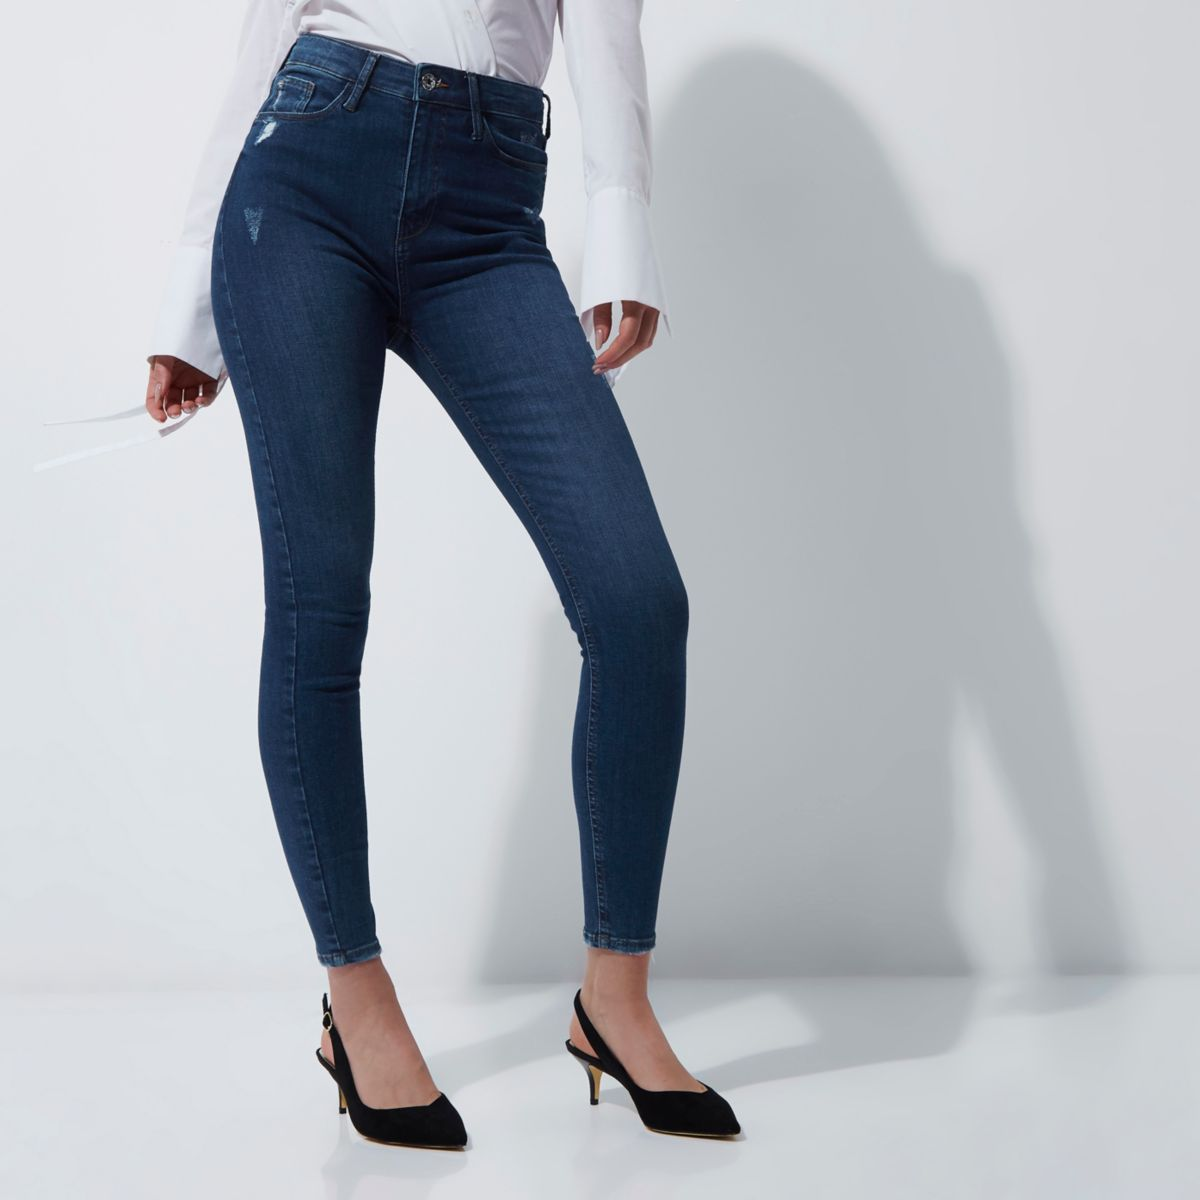 WOMEN'S HIGH RISE JEANS High rise jeans for women give her the ultimate waist-defining shape. A style that's been famous for decades, we've expanded our range of .